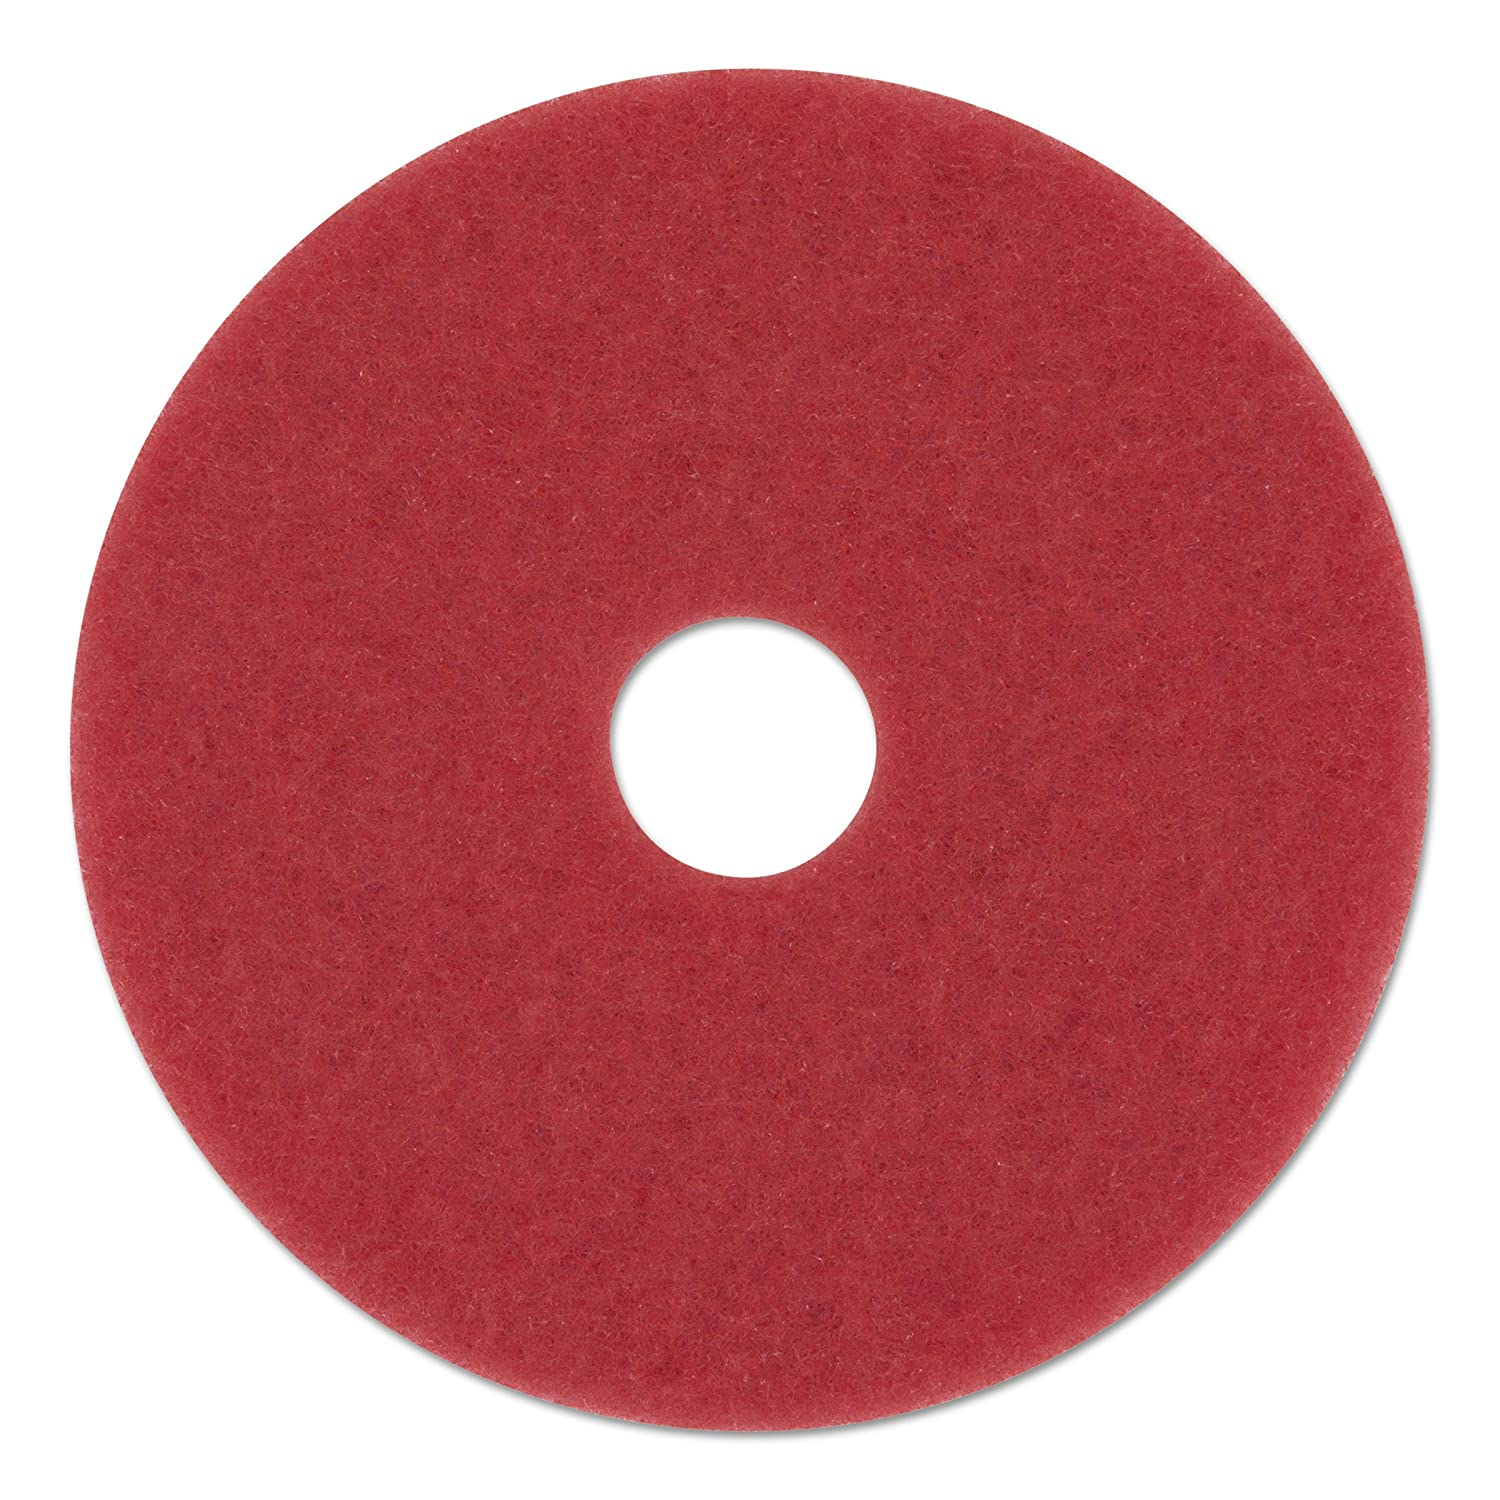 """Daily Cleaning and Spray Buffing 16/"""" Red Floor Scrubbing Buffer Pads Box of 5"""